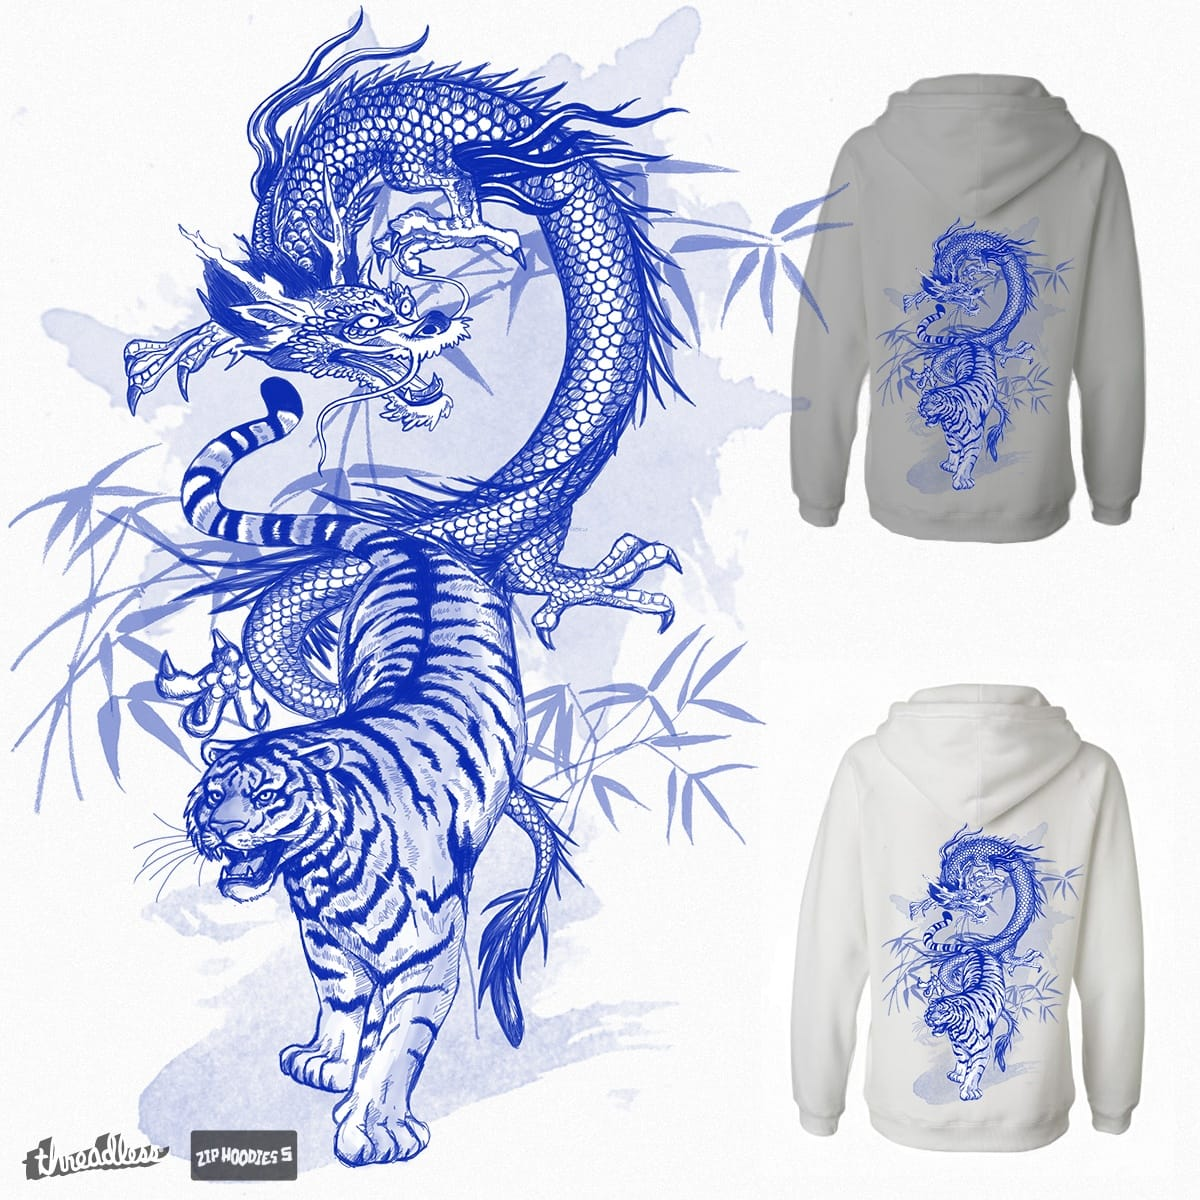 A dragon and a tiger by Lenath on Threadless